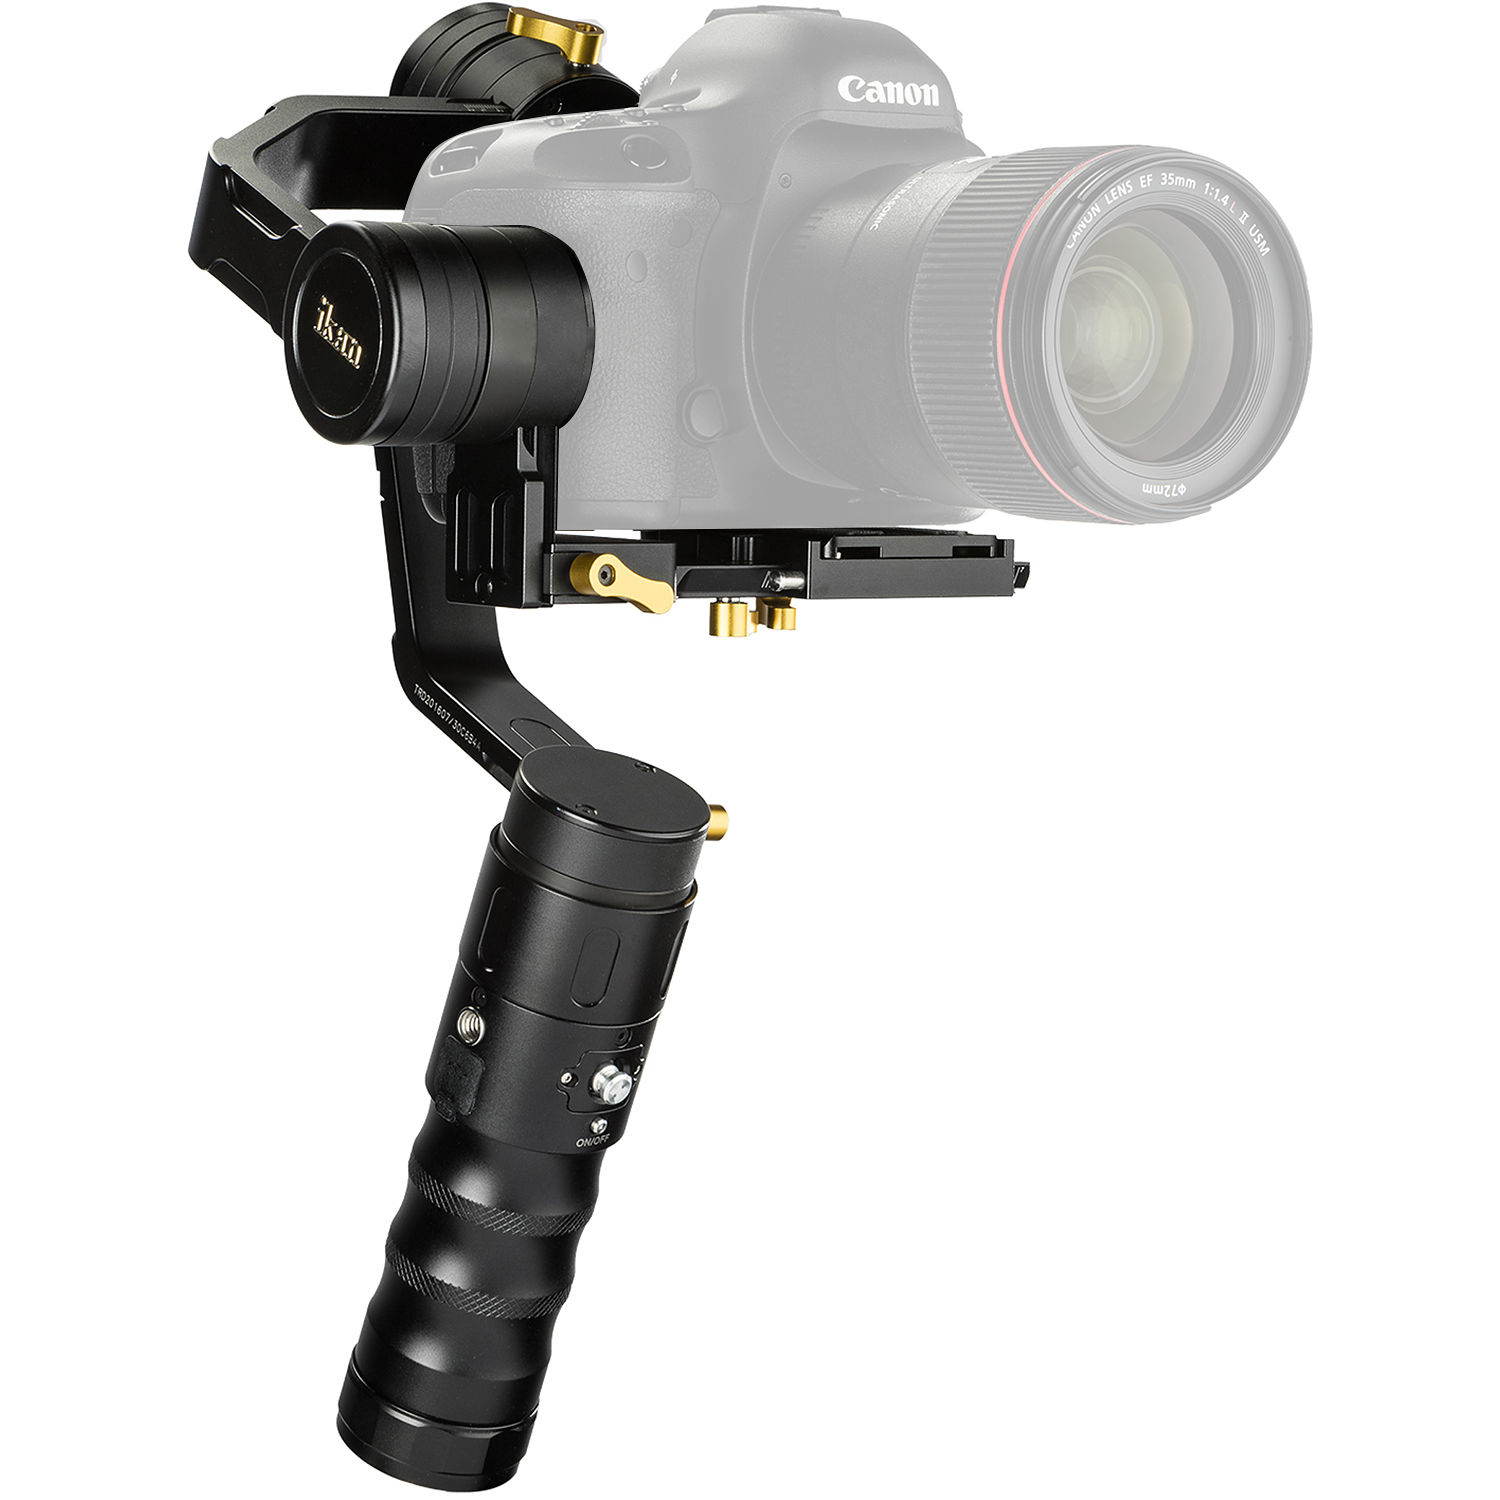 Ikan Ec1 Beholder 3 Axis Handheld Gimbal Stabilizer Bh Still Don39t Fully Get How The Pid Controls Ssr39s Or Maybe I39m